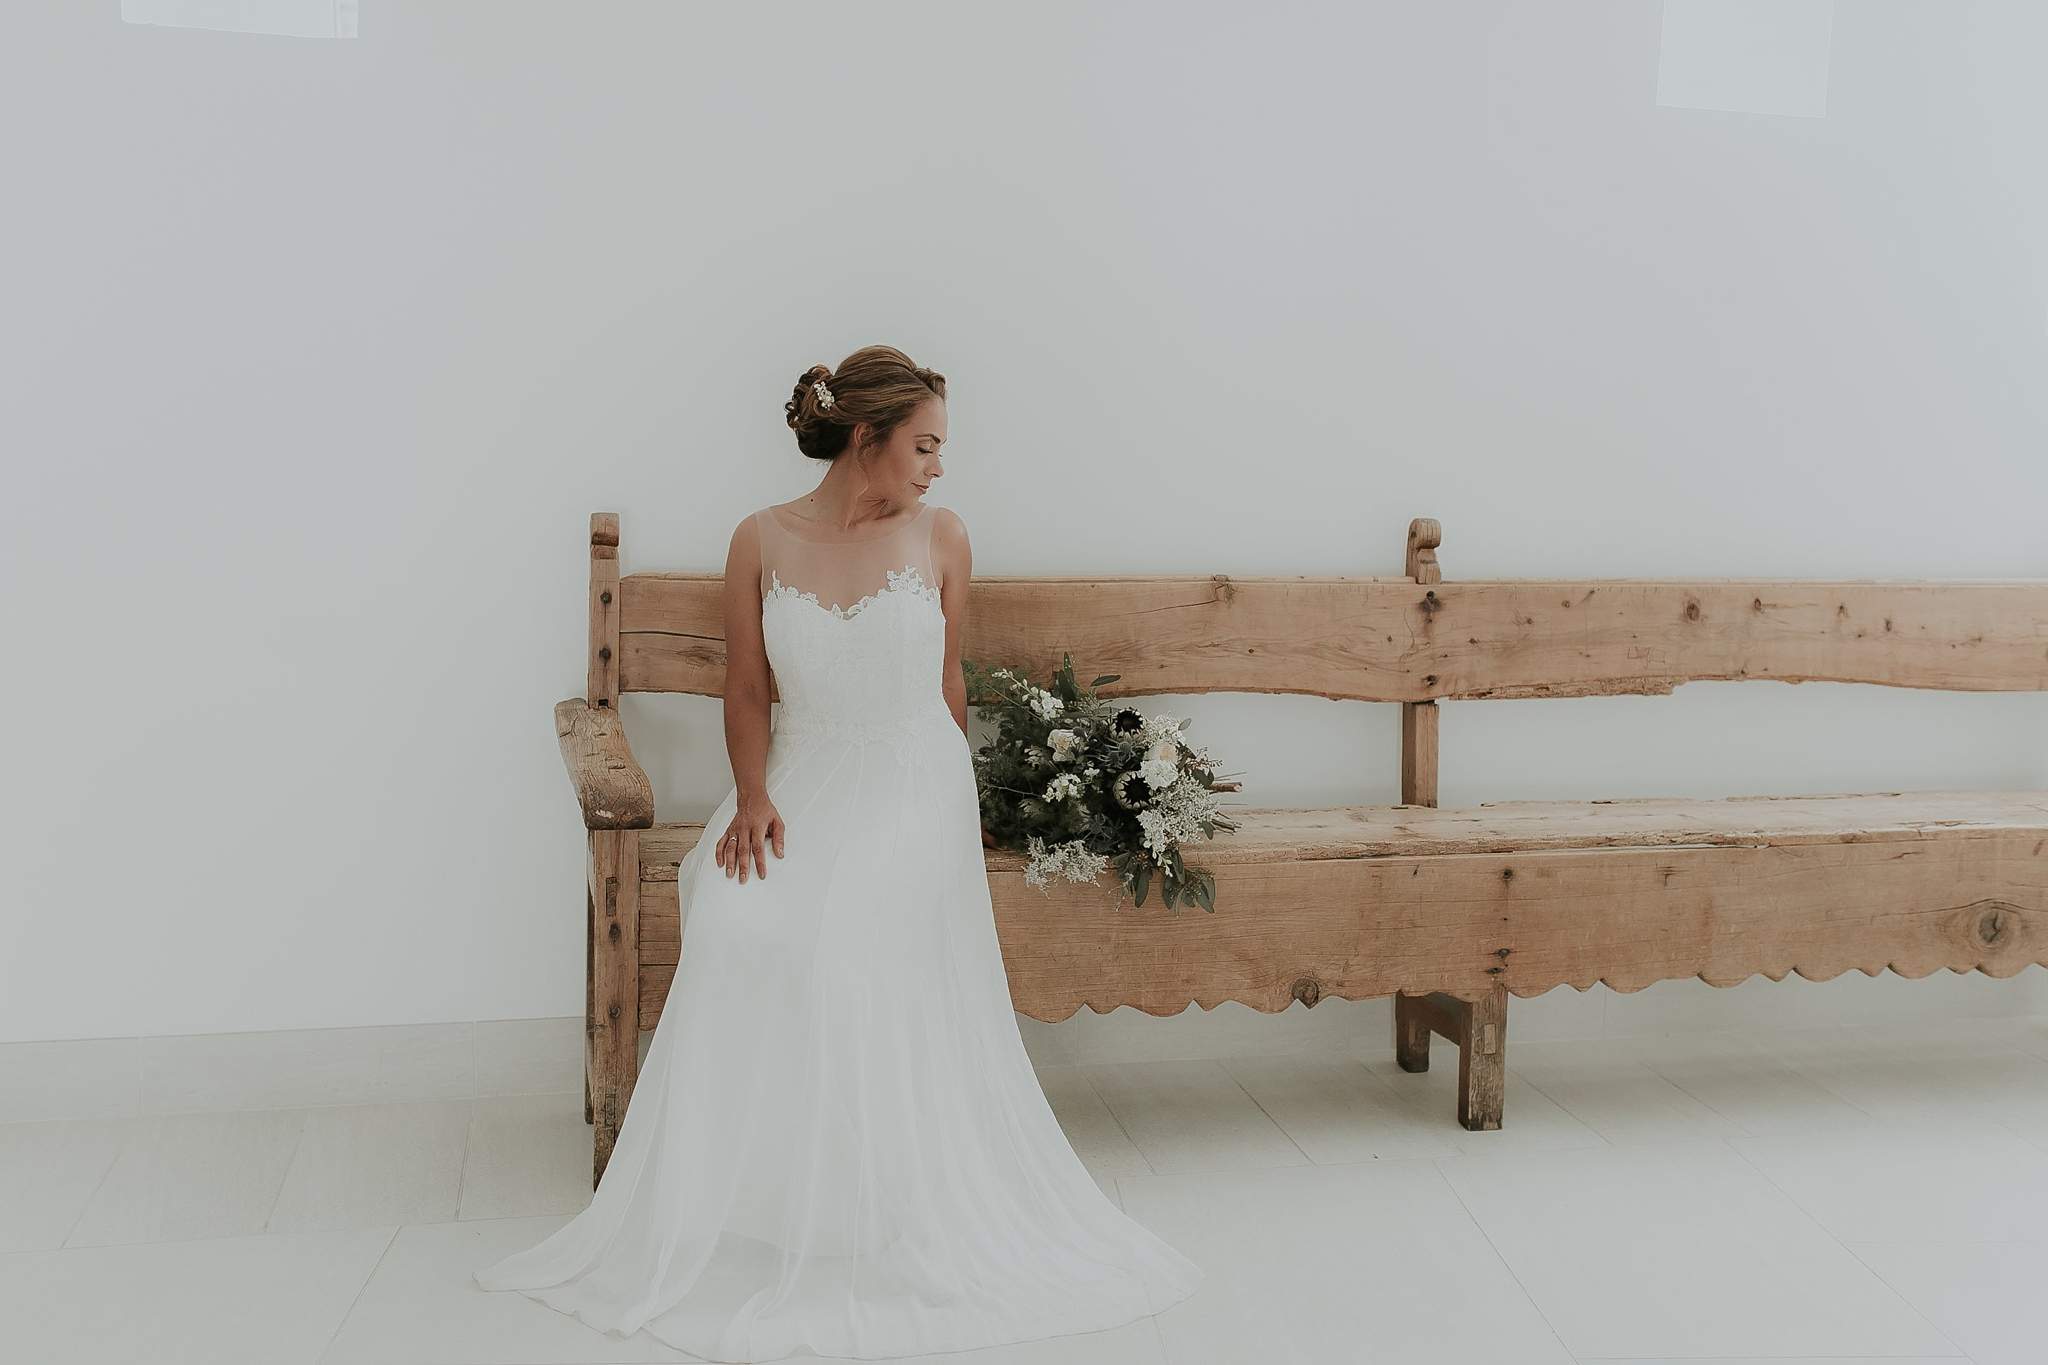 Alicia+lucia+photography+-+albuquerque+wedding+photographer+-+santa+fe+wedding+photography+-+new+mexico+wedding+photographer+-+new+mexico+wedding+-+wedding+gowns+-+bridal+gowns+-+a+line+wedding+gown_0077.jpg